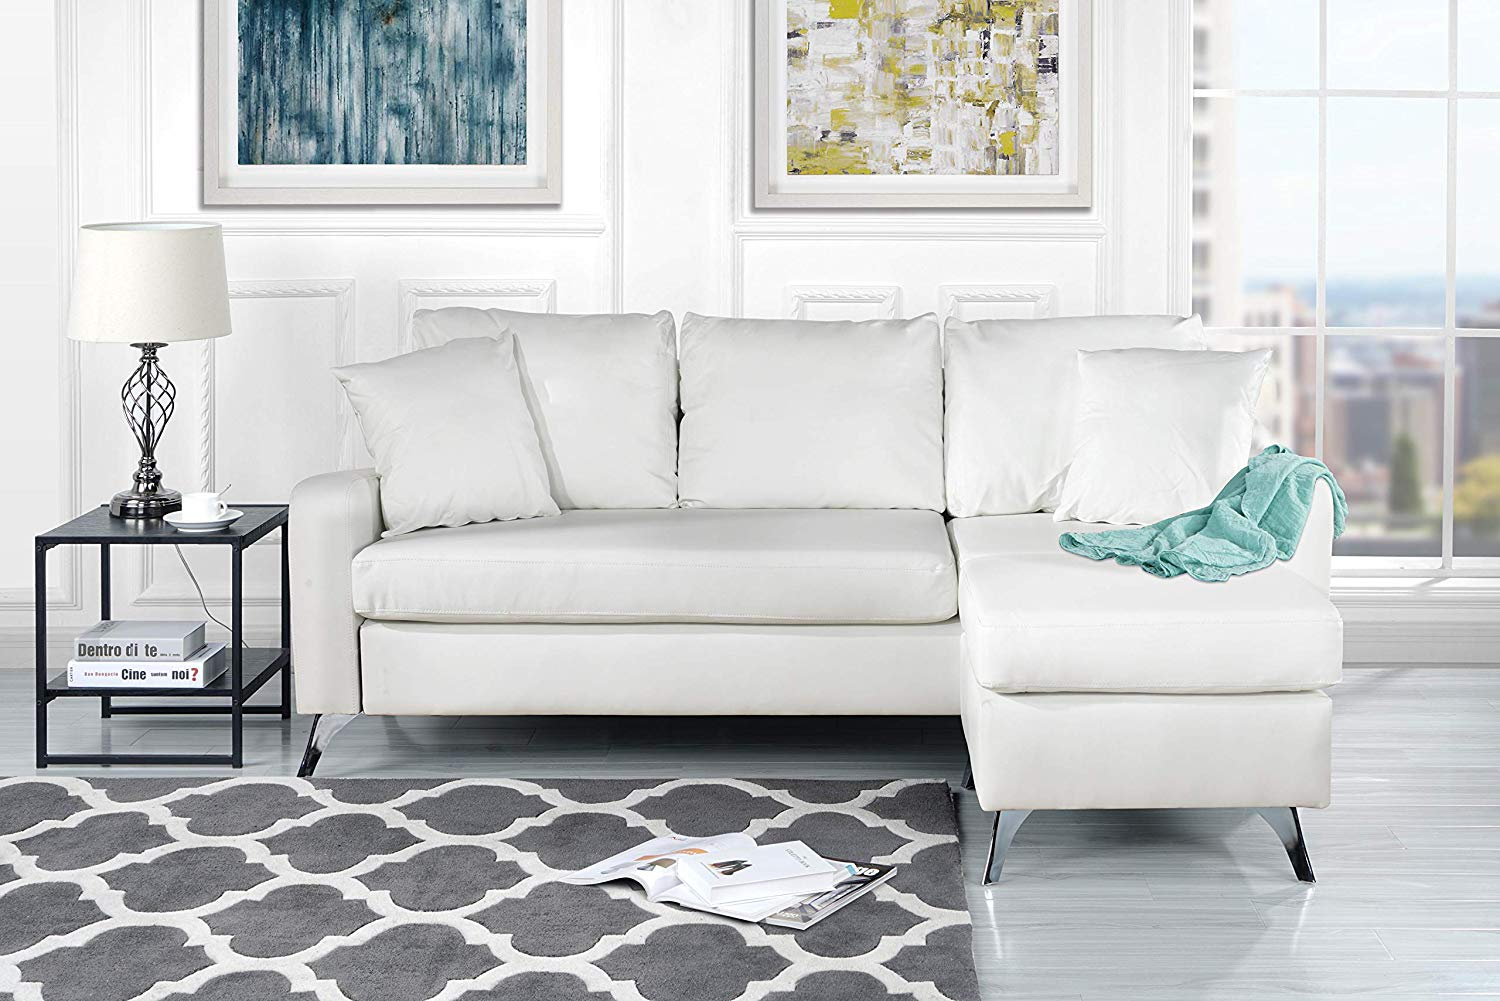 Admirable Cheap White Leather Sectional Couch Find White Leather Caraccident5 Cool Chair Designs And Ideas Caraccident5Info